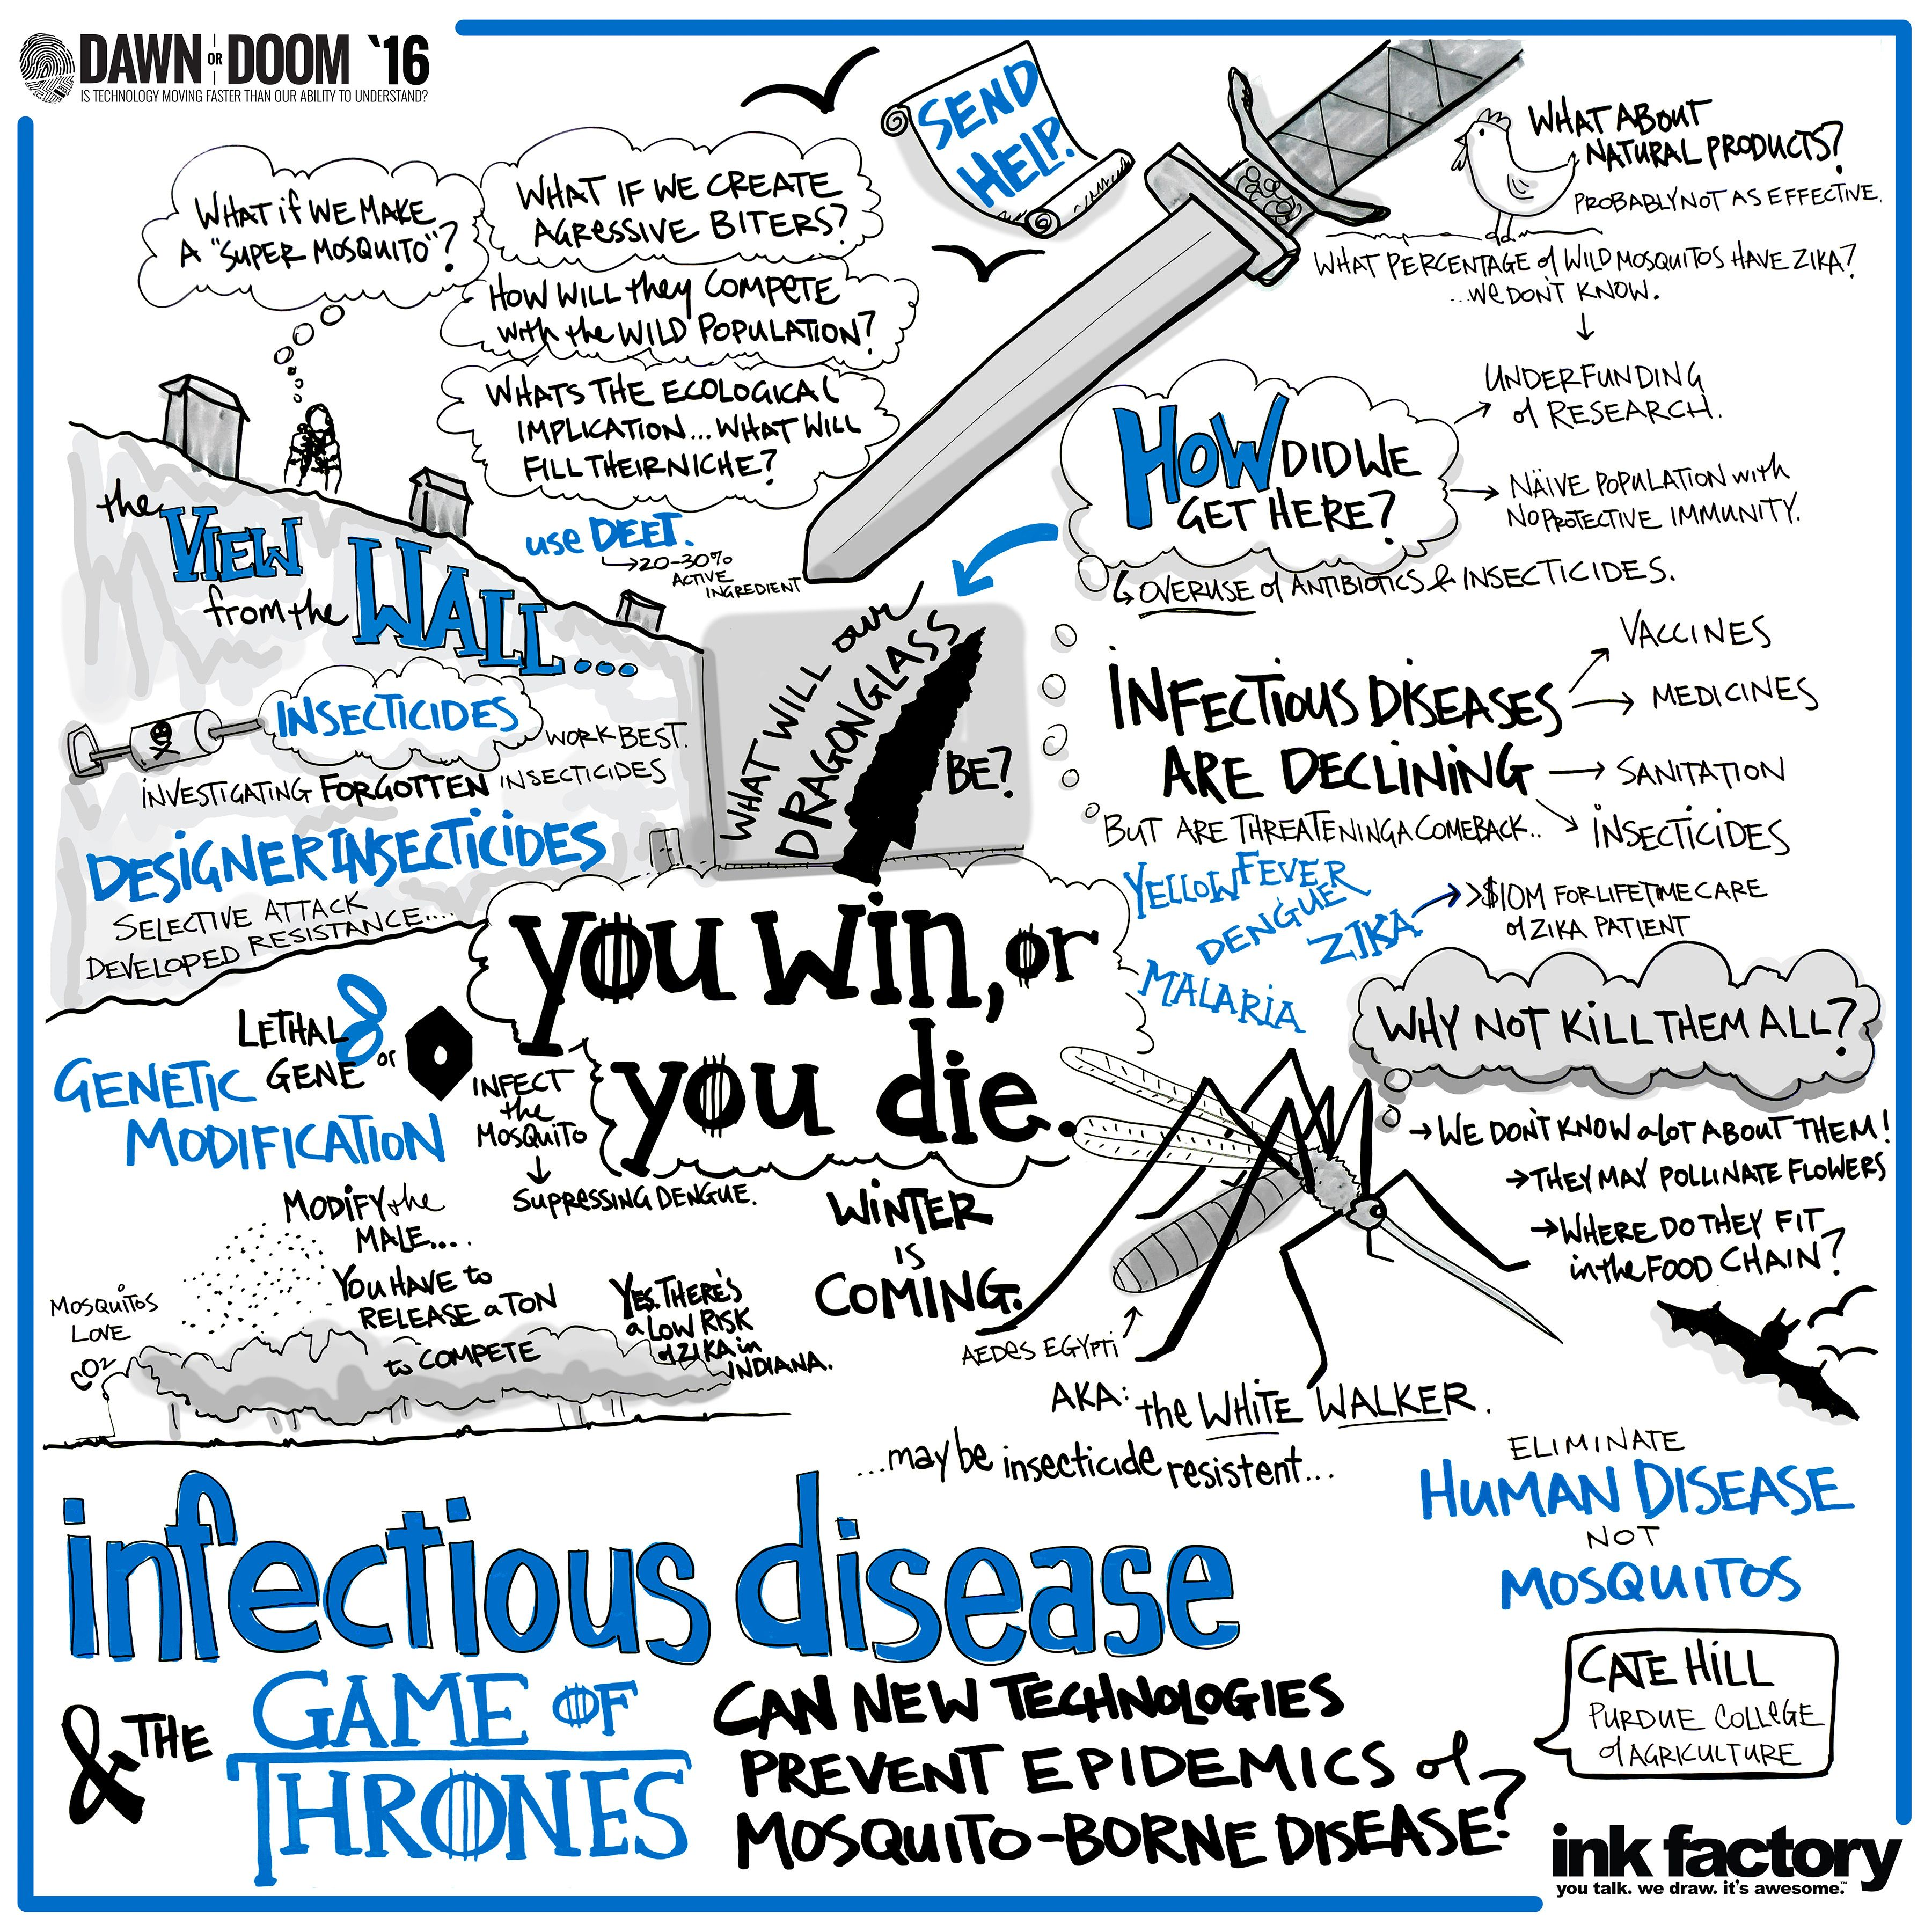 Infectious Diseases and the Game of Thrones: Can new